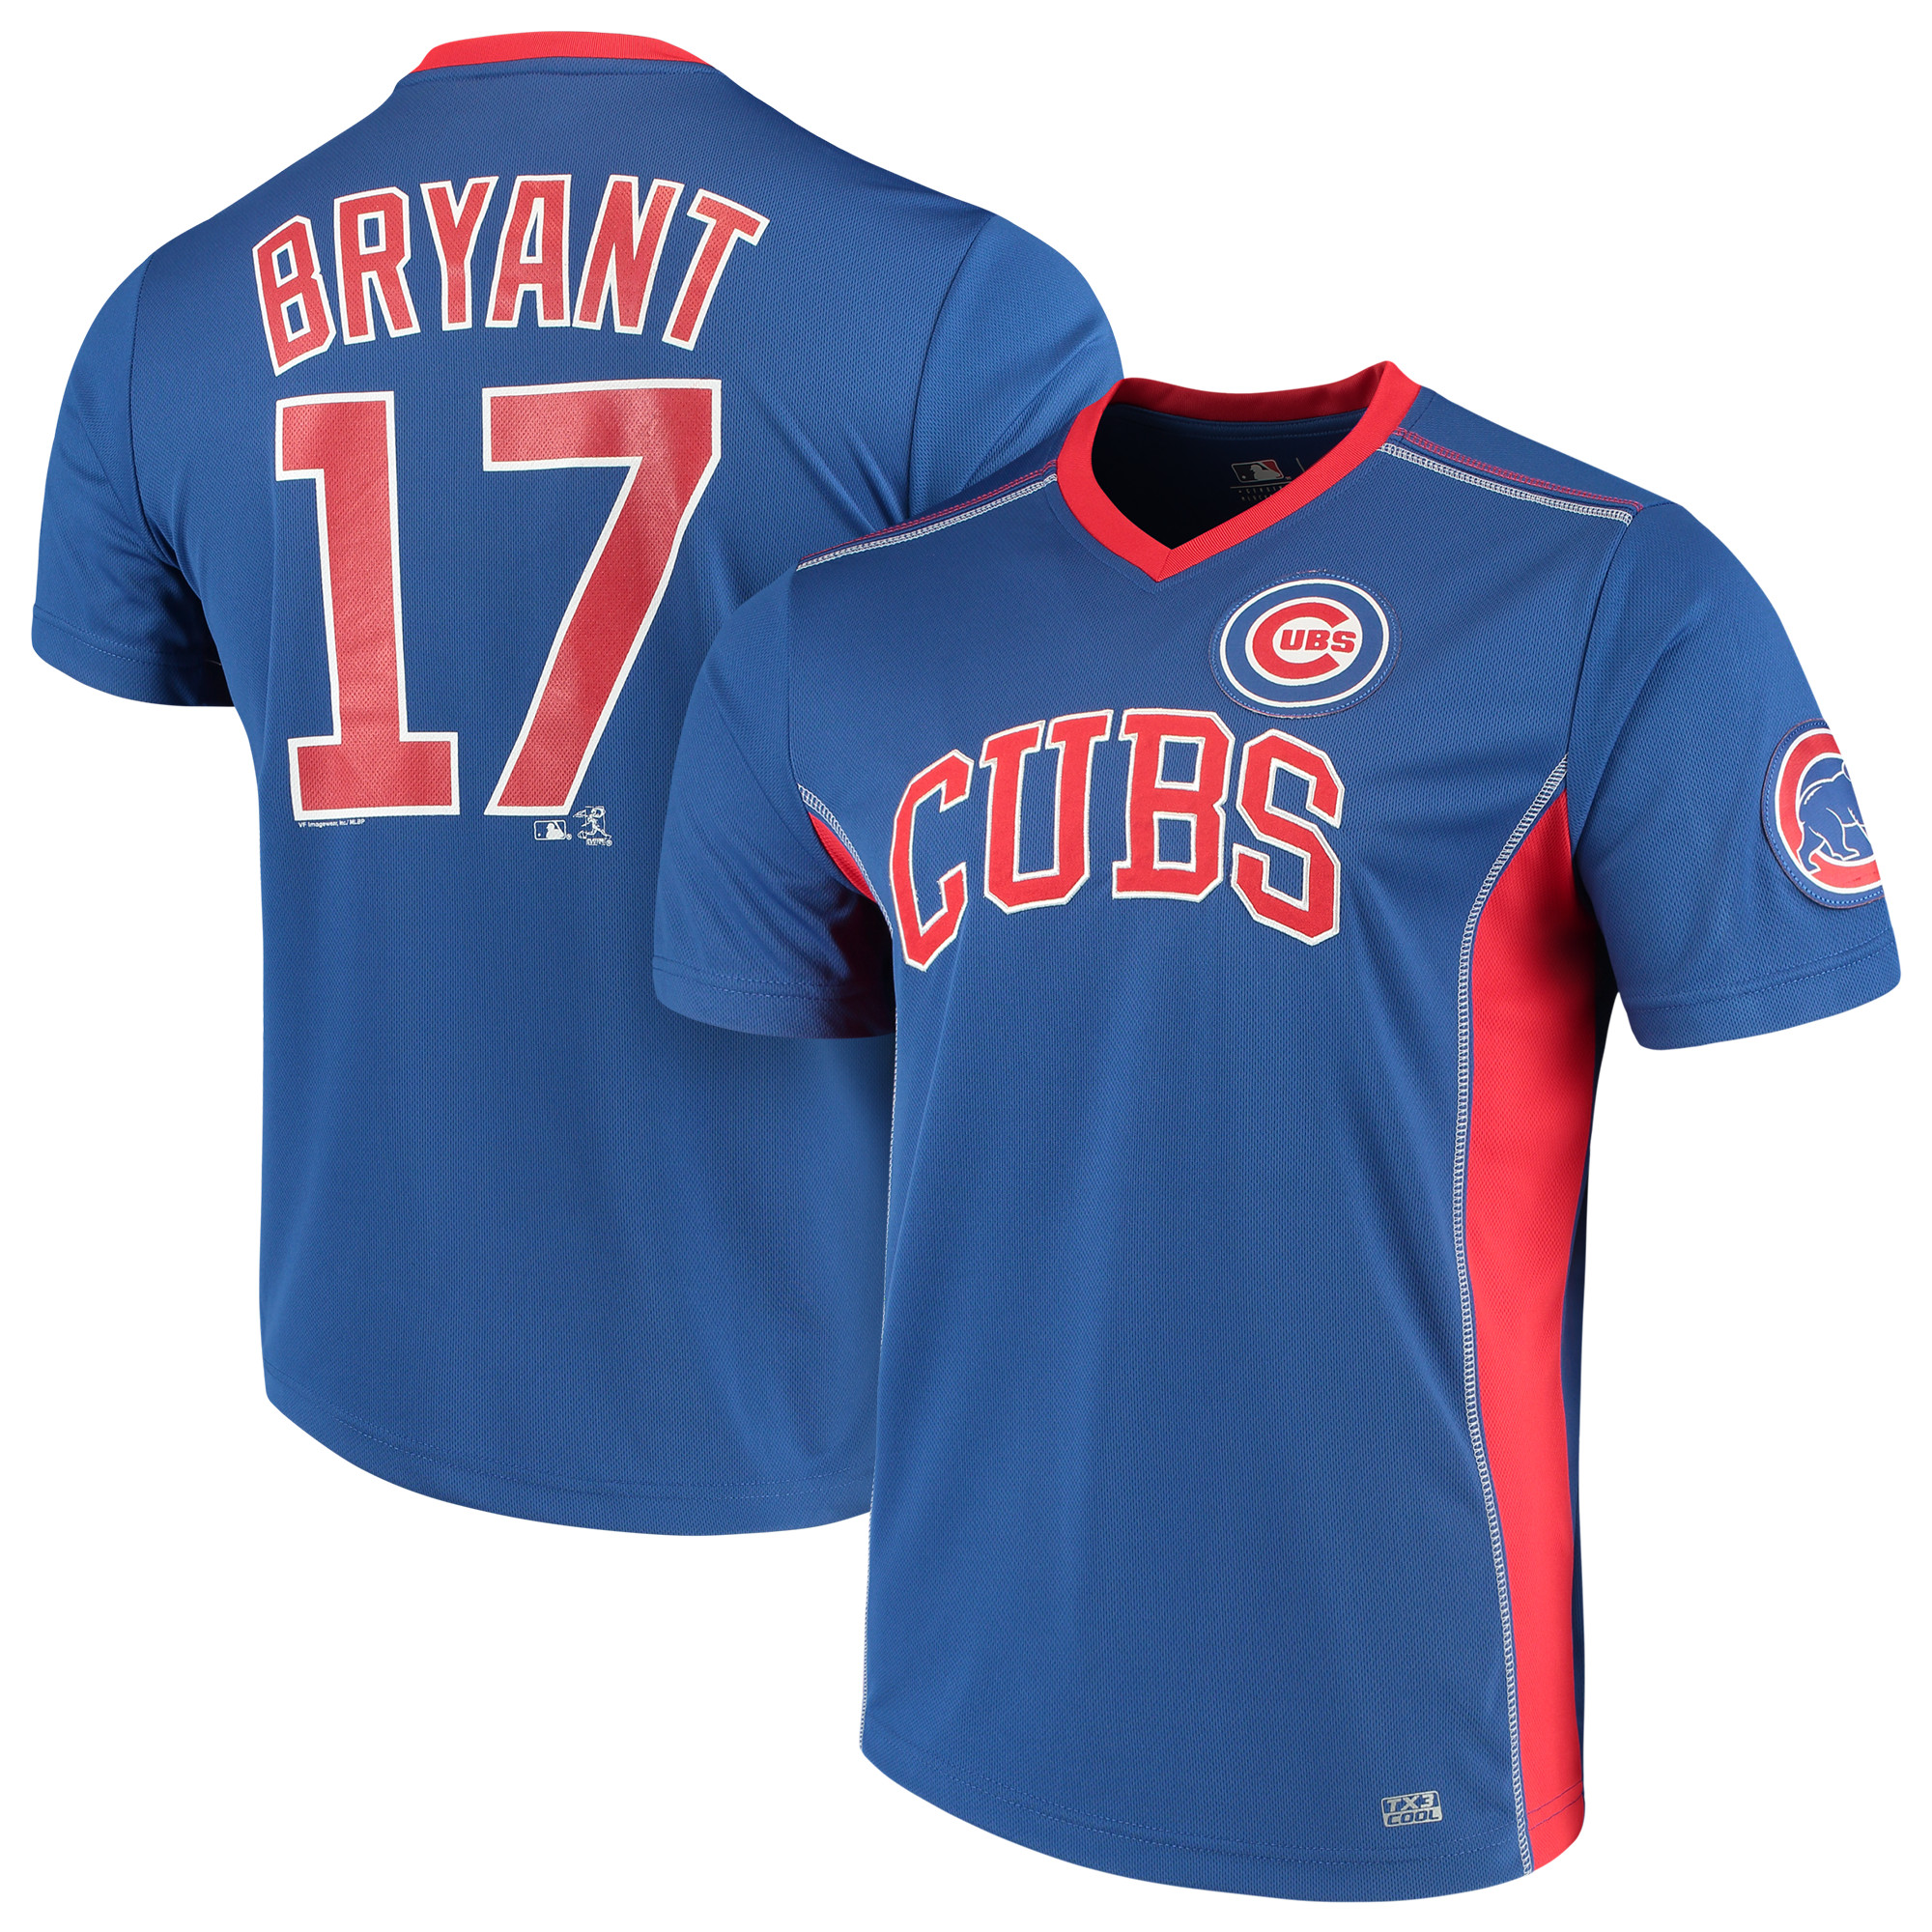 Men's Majestic Kris Bryant Royal Chicago Cubs Player Name & Number Cool Base V-Neck T-Shirt by MAJESTIC LSG